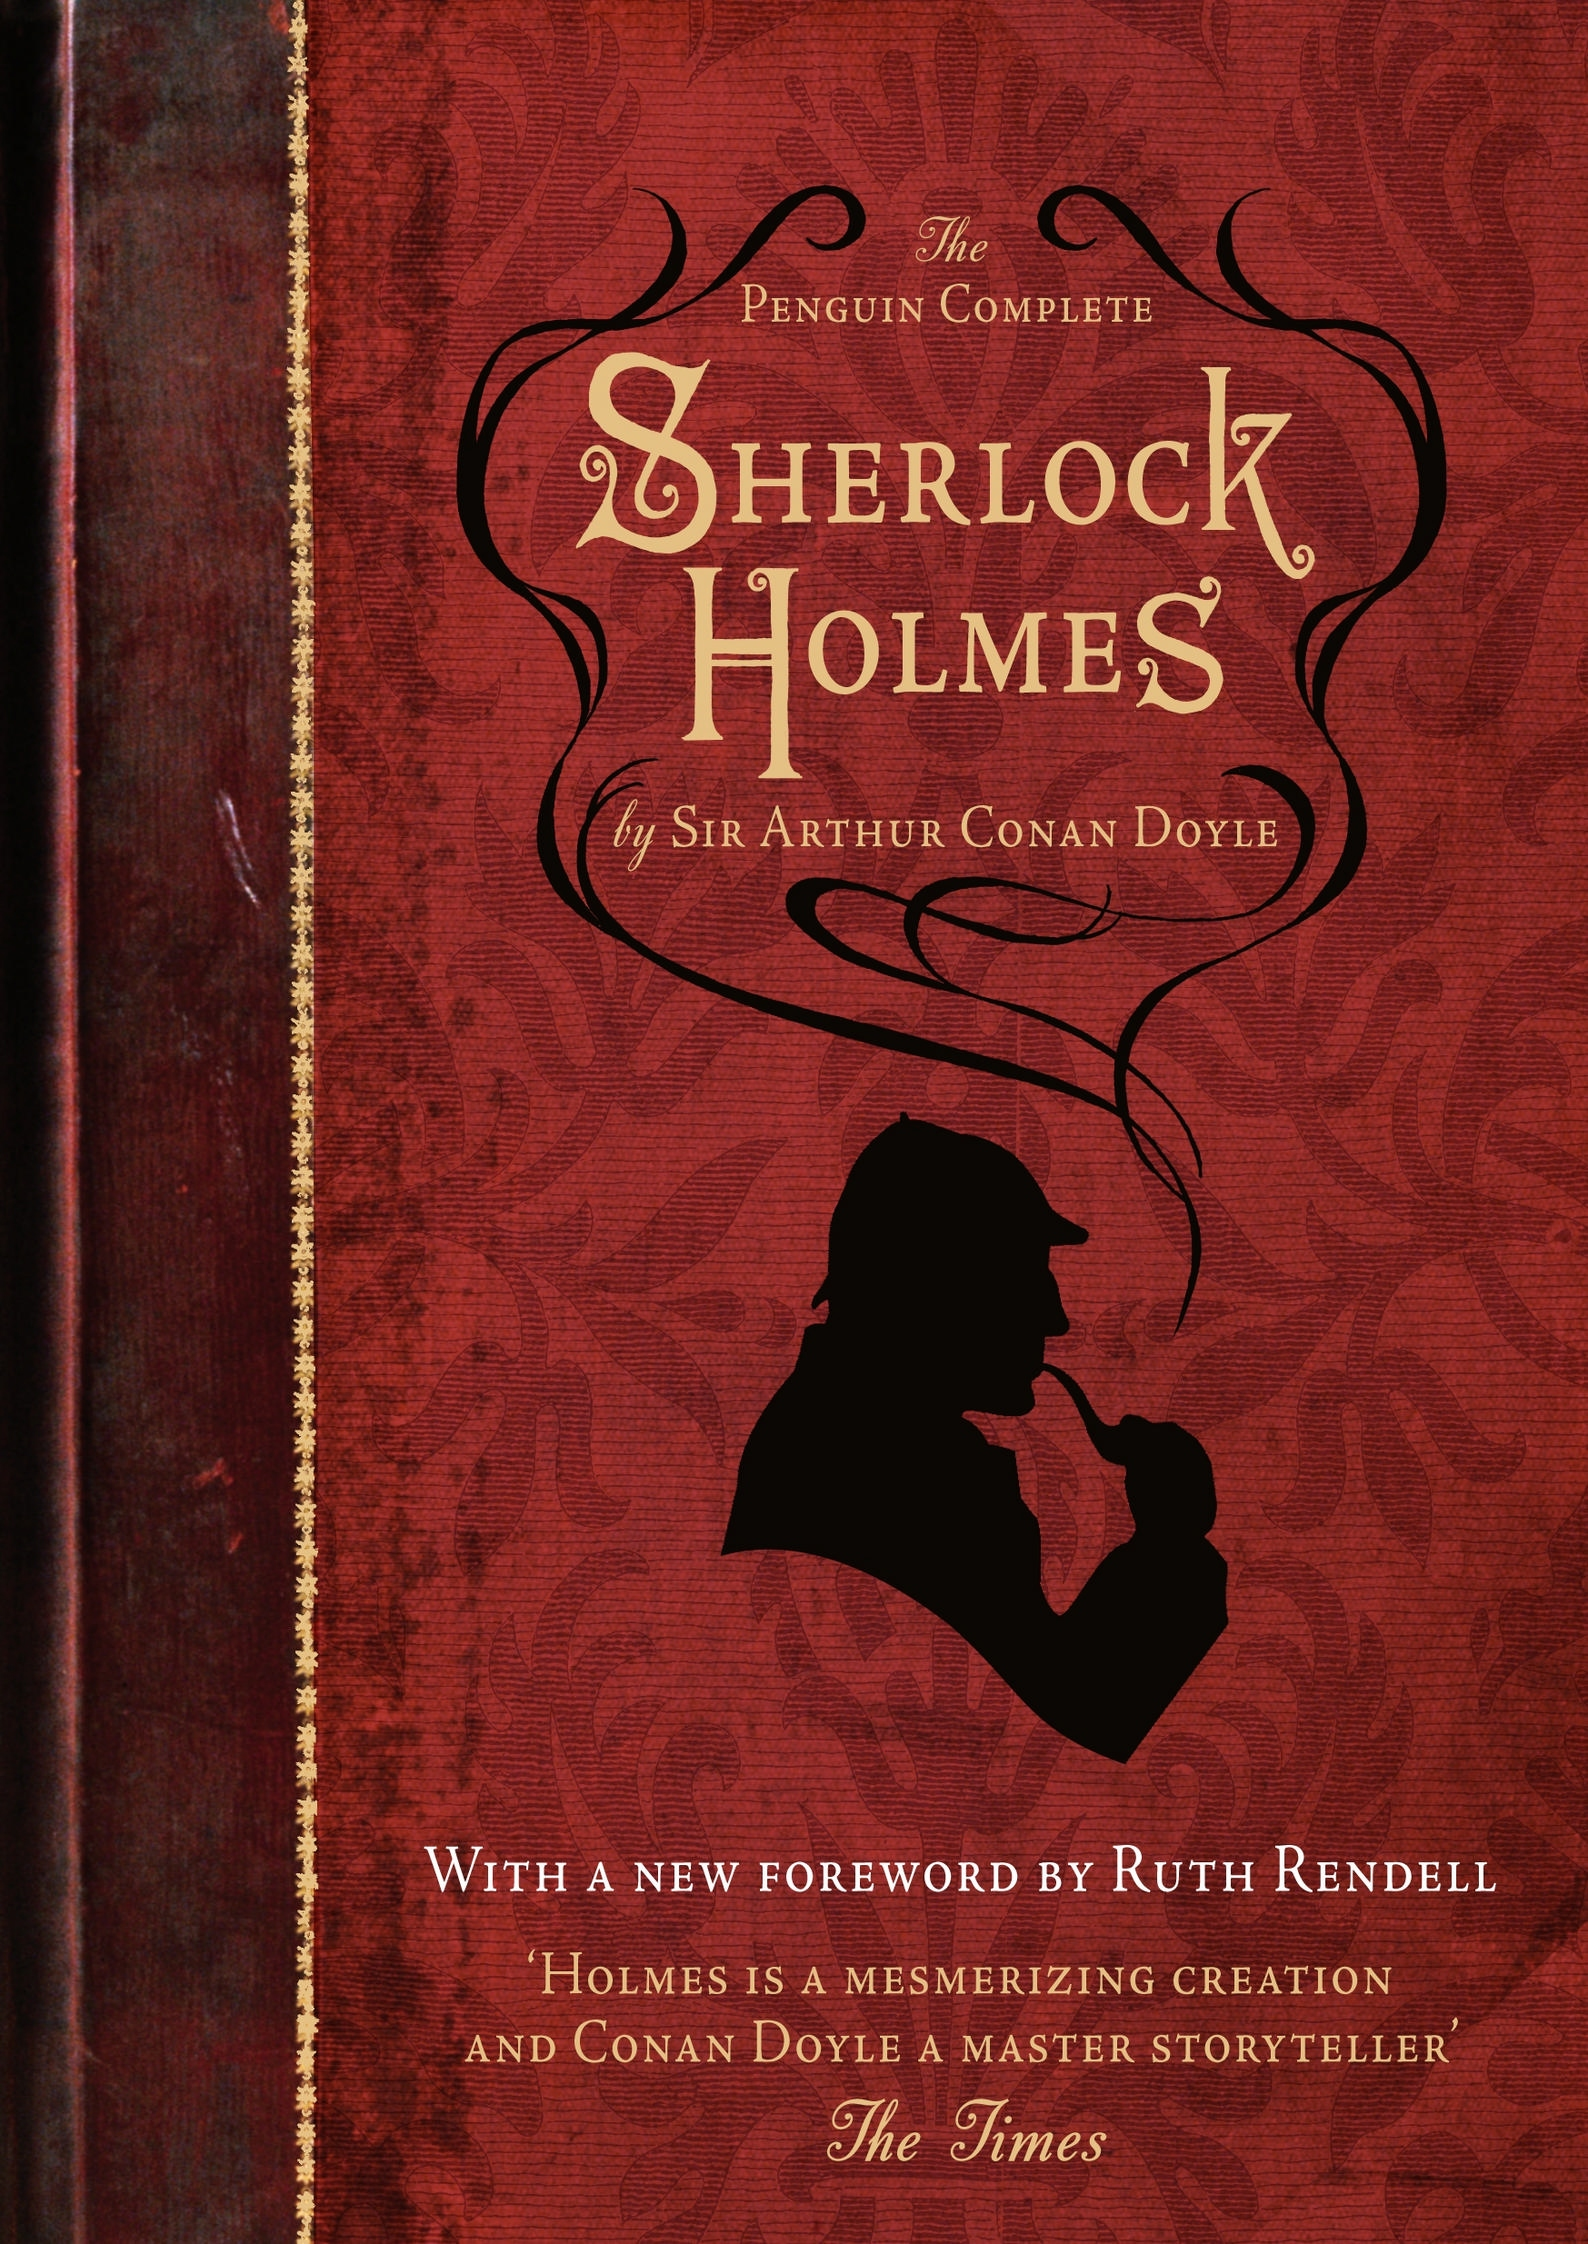 an analysis of sherlock holmes by arthur conan doyle Sir arthur ignatius conan doyle kstj dl (22 may 1859 – 7 july 1930) was a british writer best known for his detective fiction featuring the character sherlock holmes .